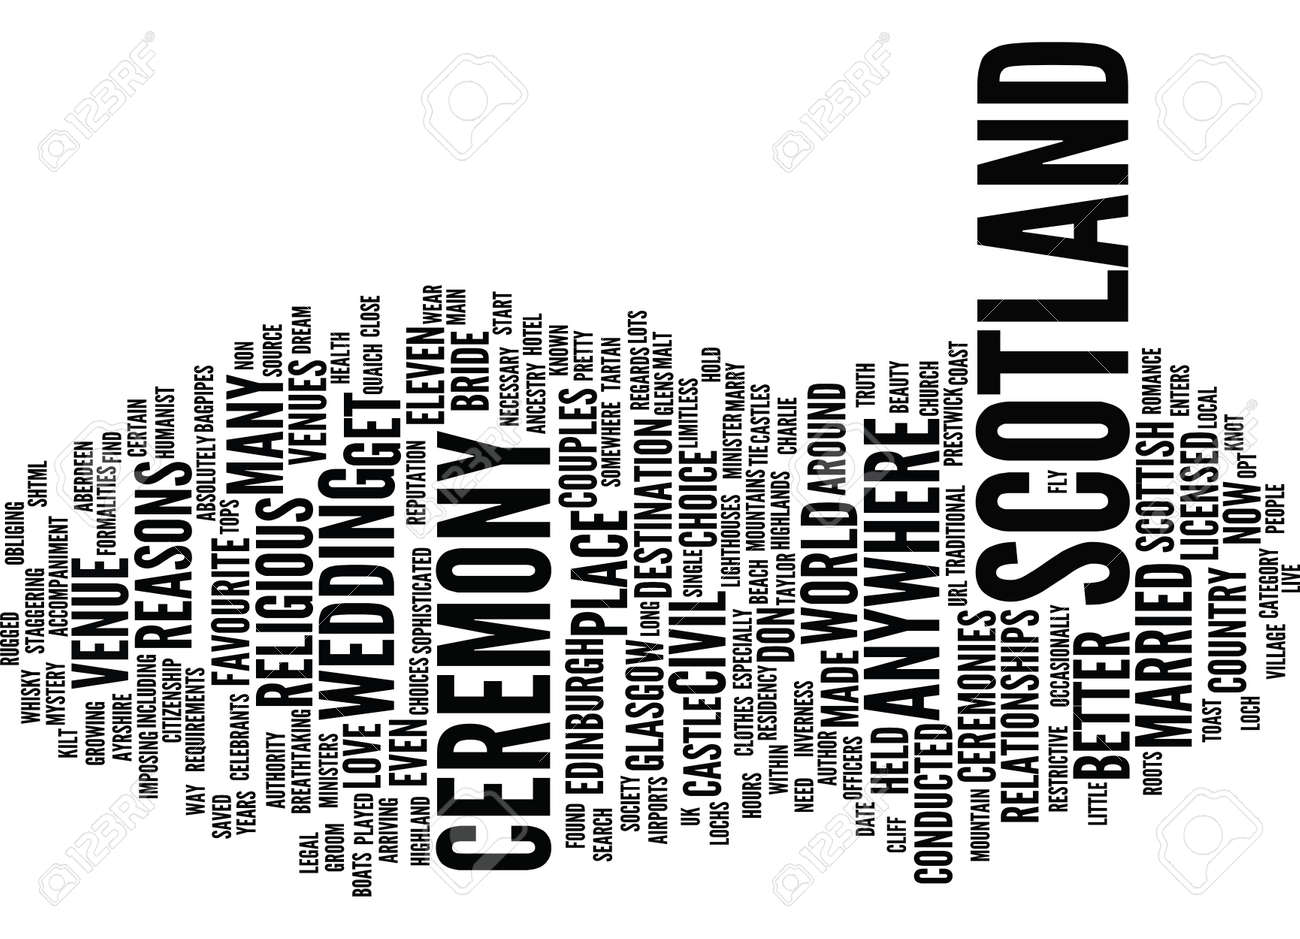 ELEVEN REASONS TO GET MARRIED IN SCOTLAND Text Background Word Cloud Concept - 82572899